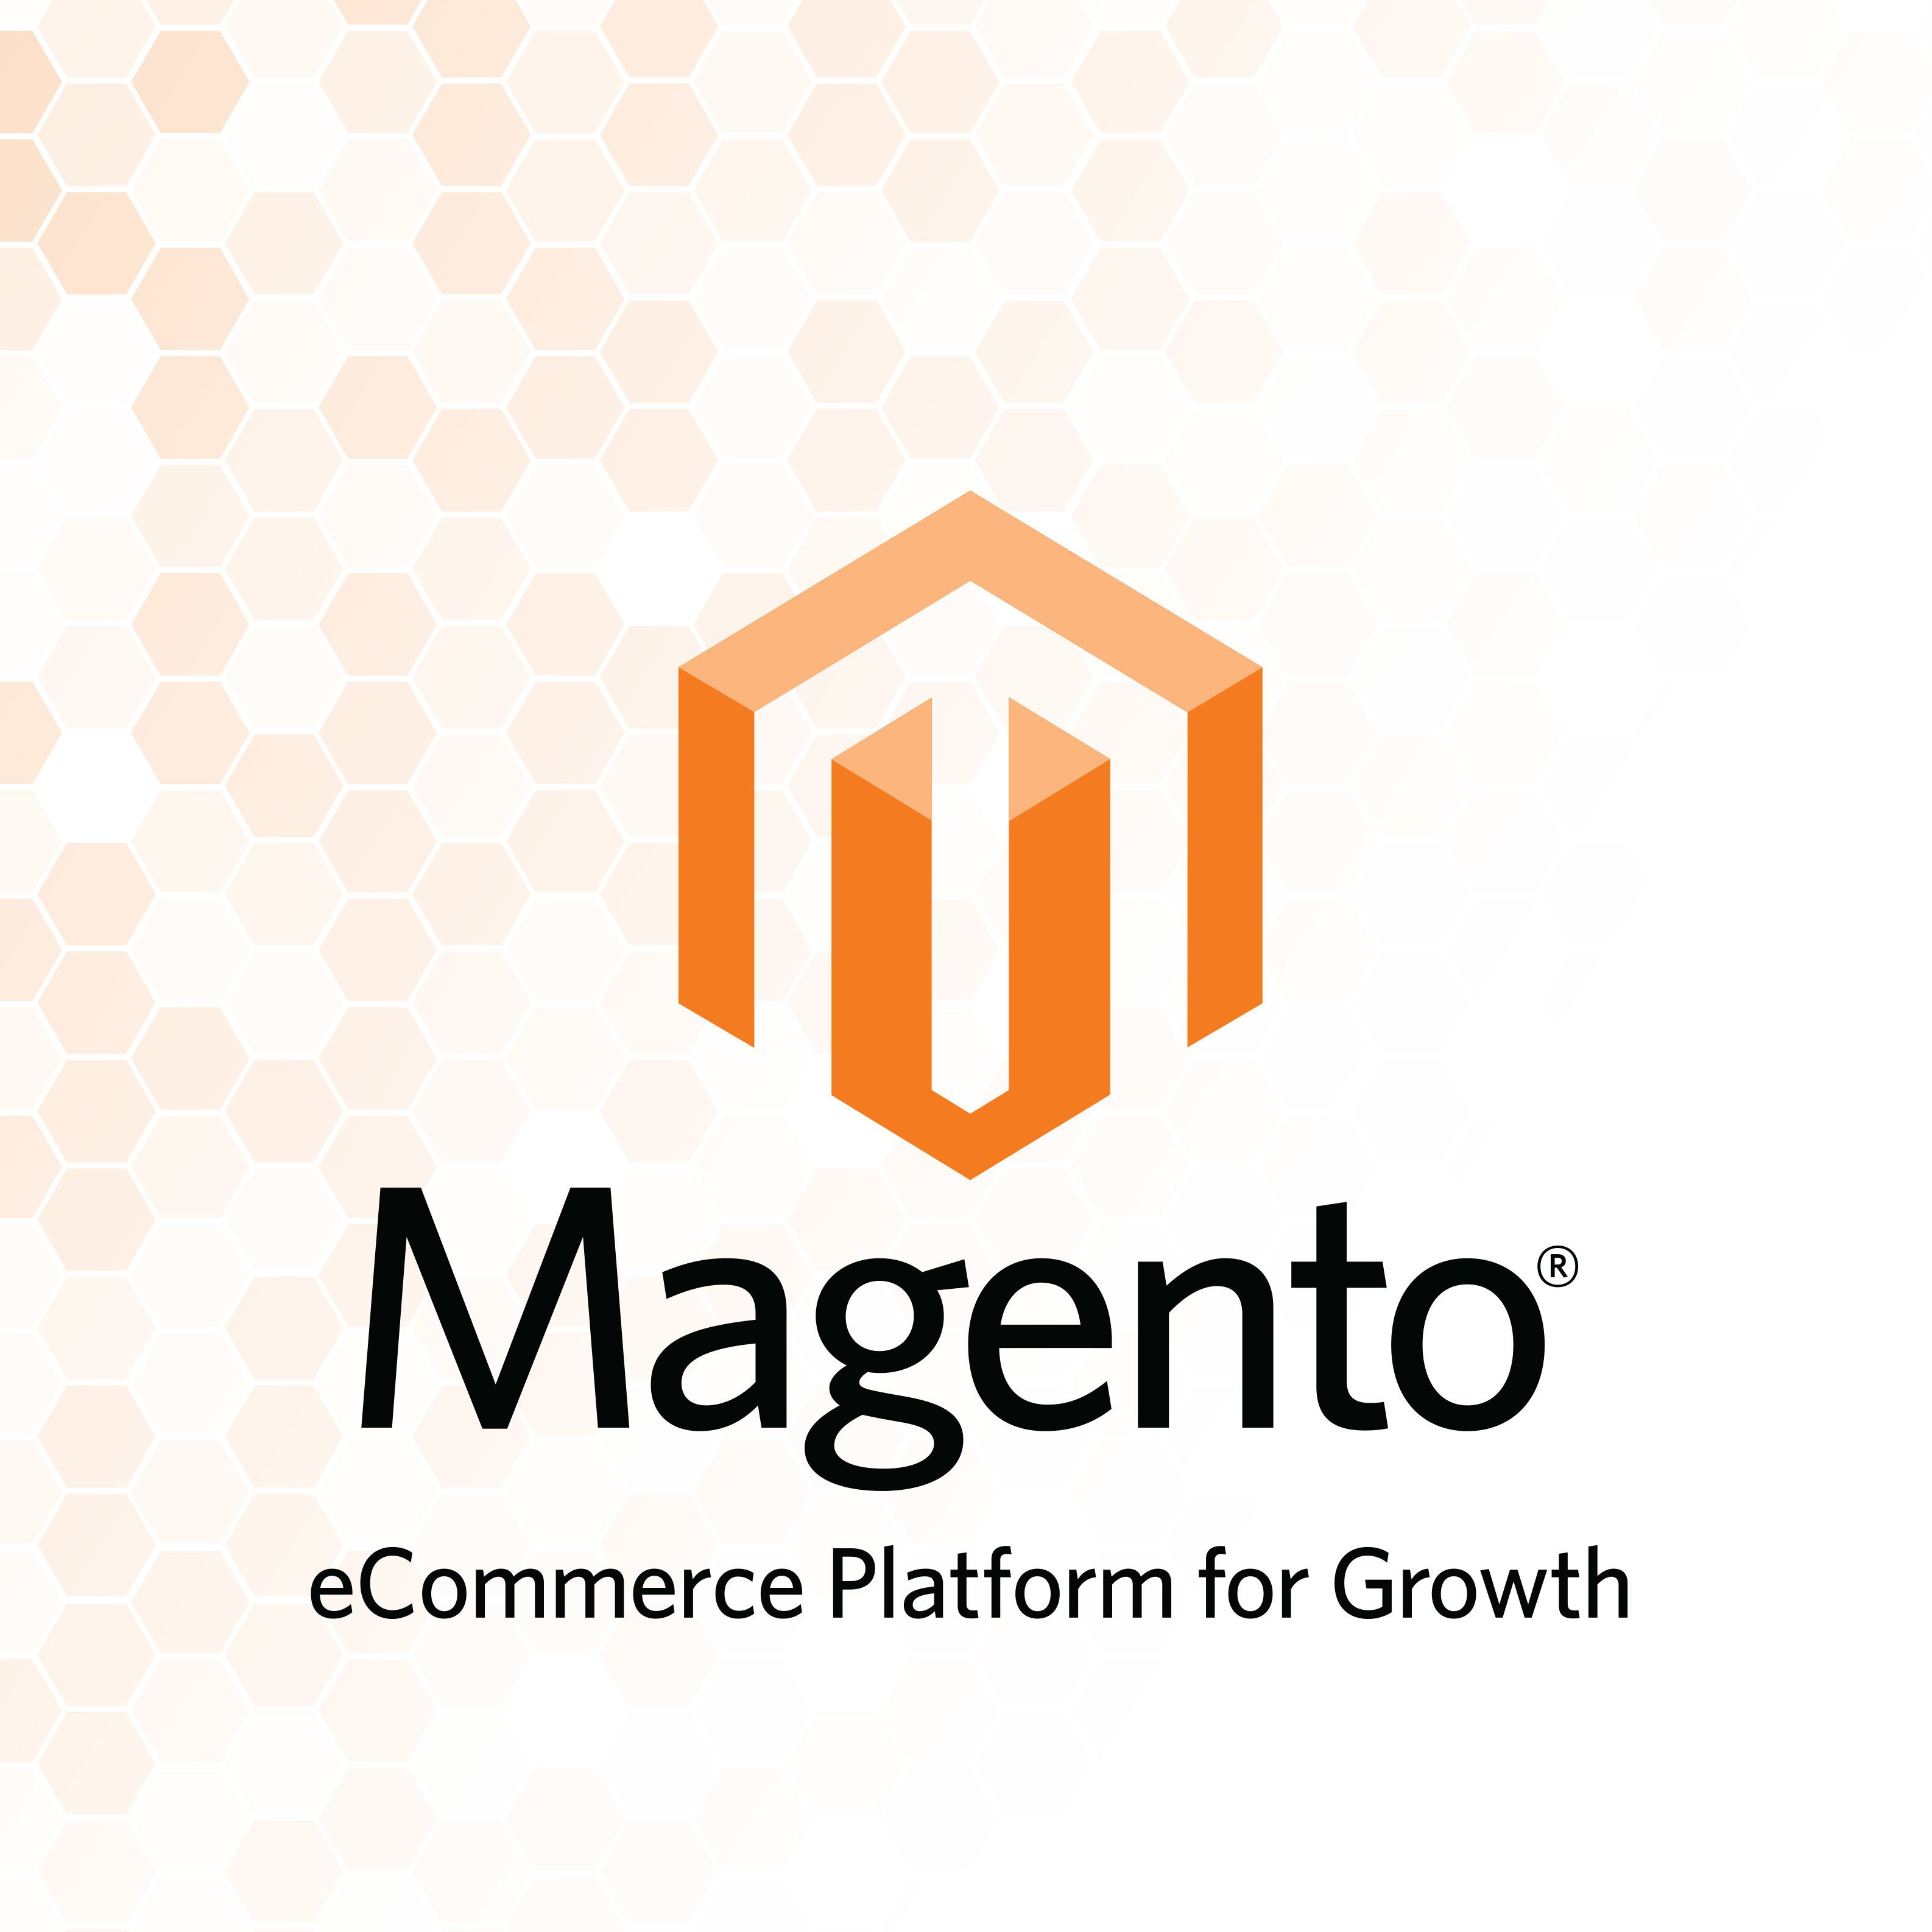 Top 15 Magento Interview Questions & Answers